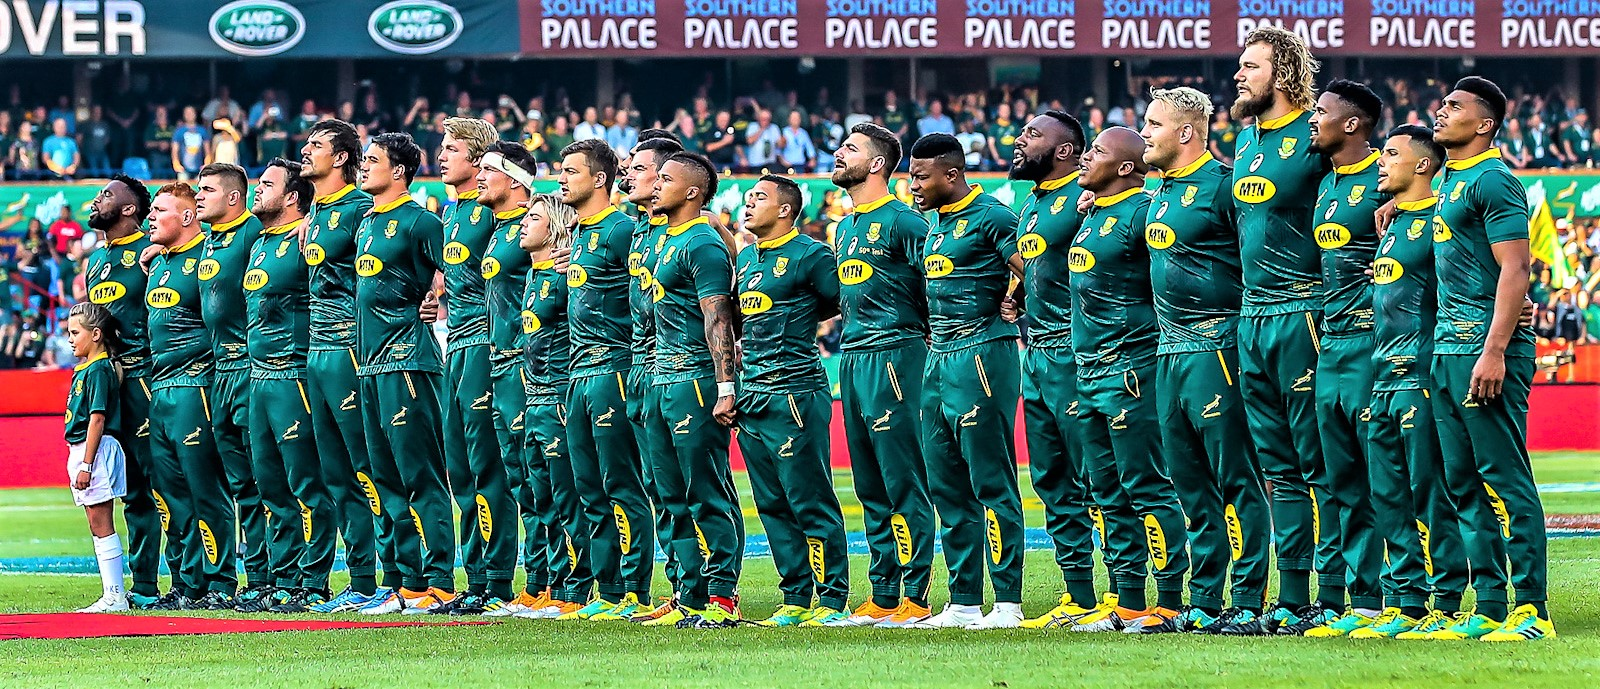 South Africa Springboks vs Japan Rugby World Cup 2019